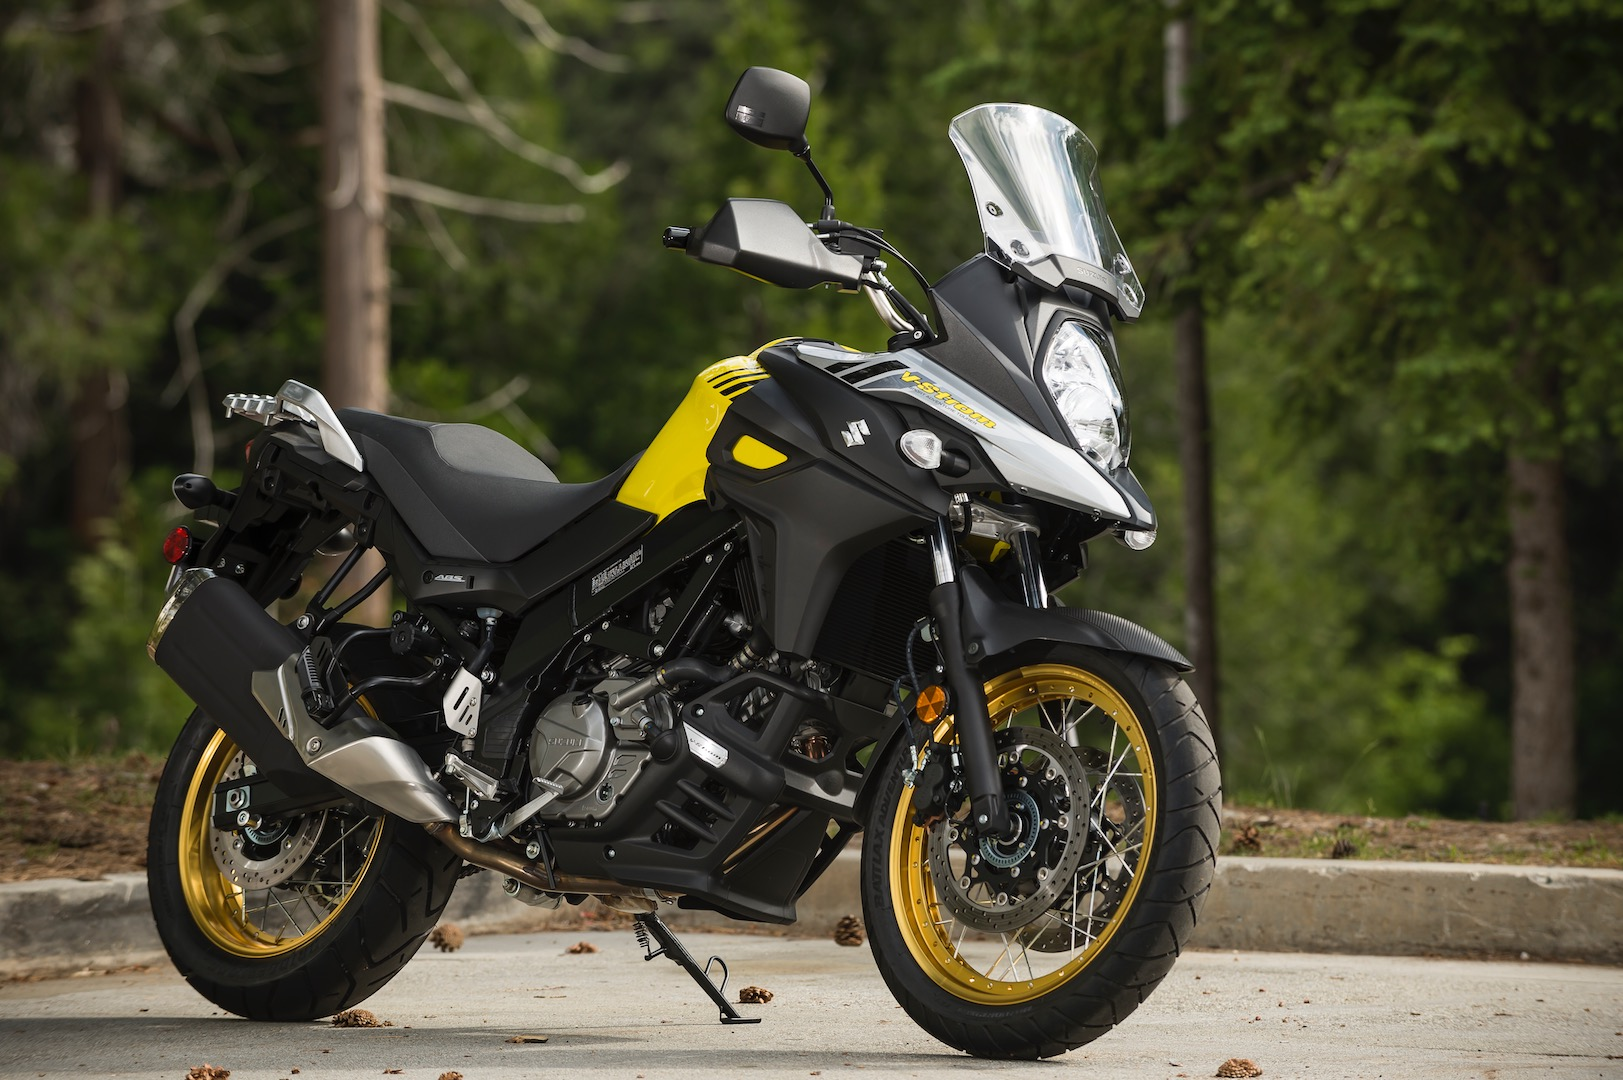 2017 suzuki v strom 650 and 650xt review 10 fast facts. Black Bedroom Furniture Sets. Home Design Ideas